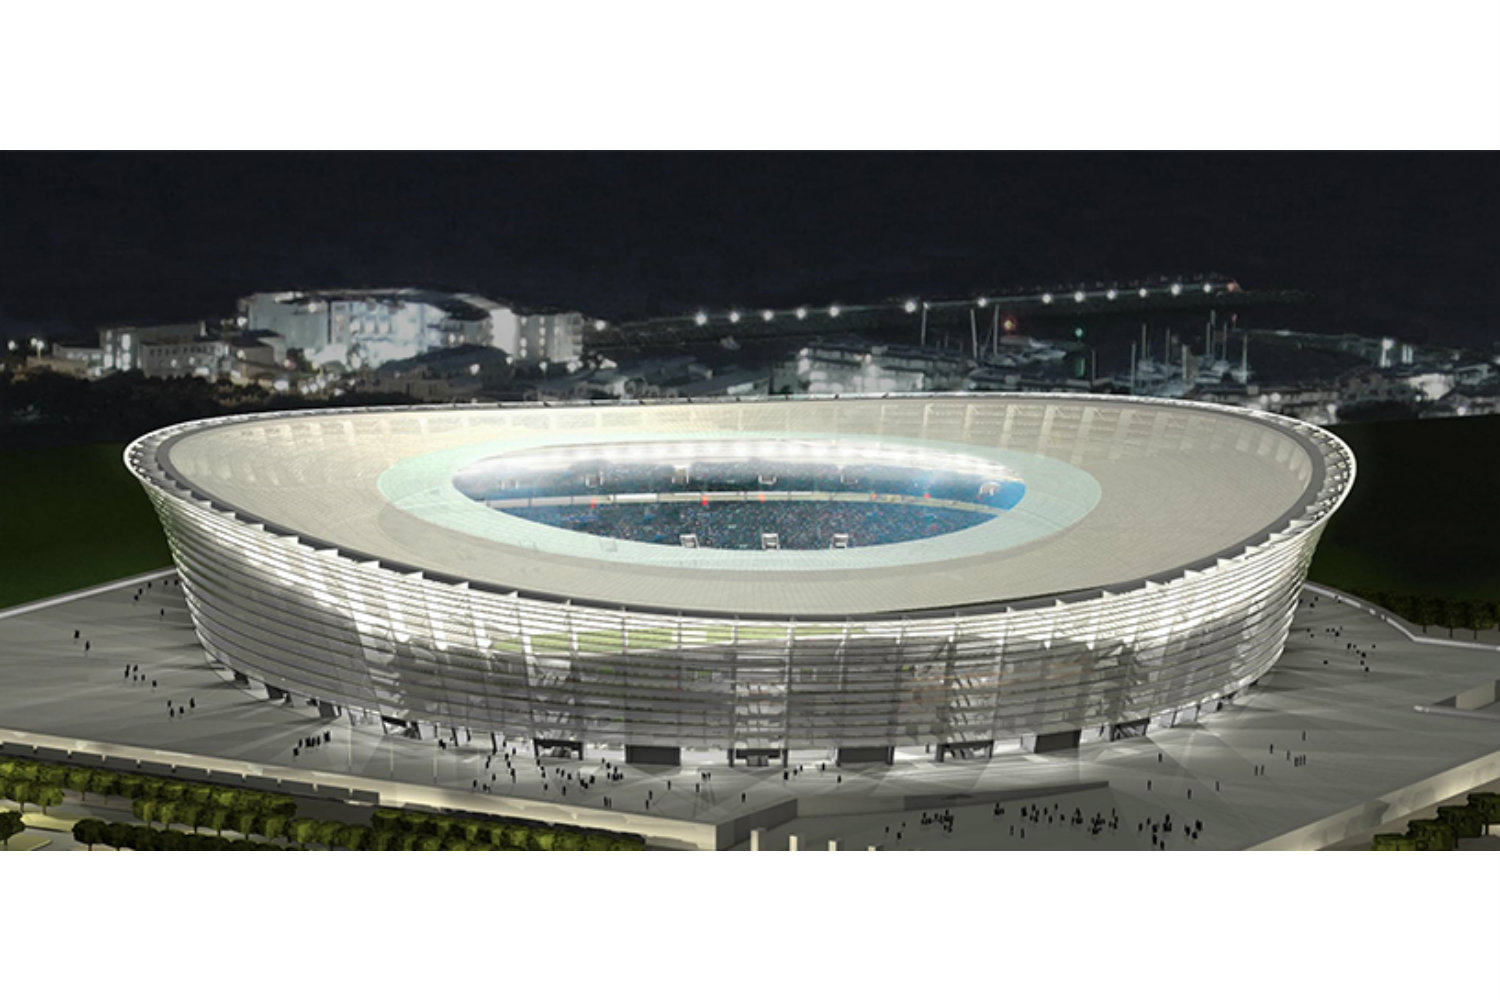 Green Point Stadium in Cape Town, South Africa. Noise emissions and consulting by ADA-AMC, a WSDG Company. Render